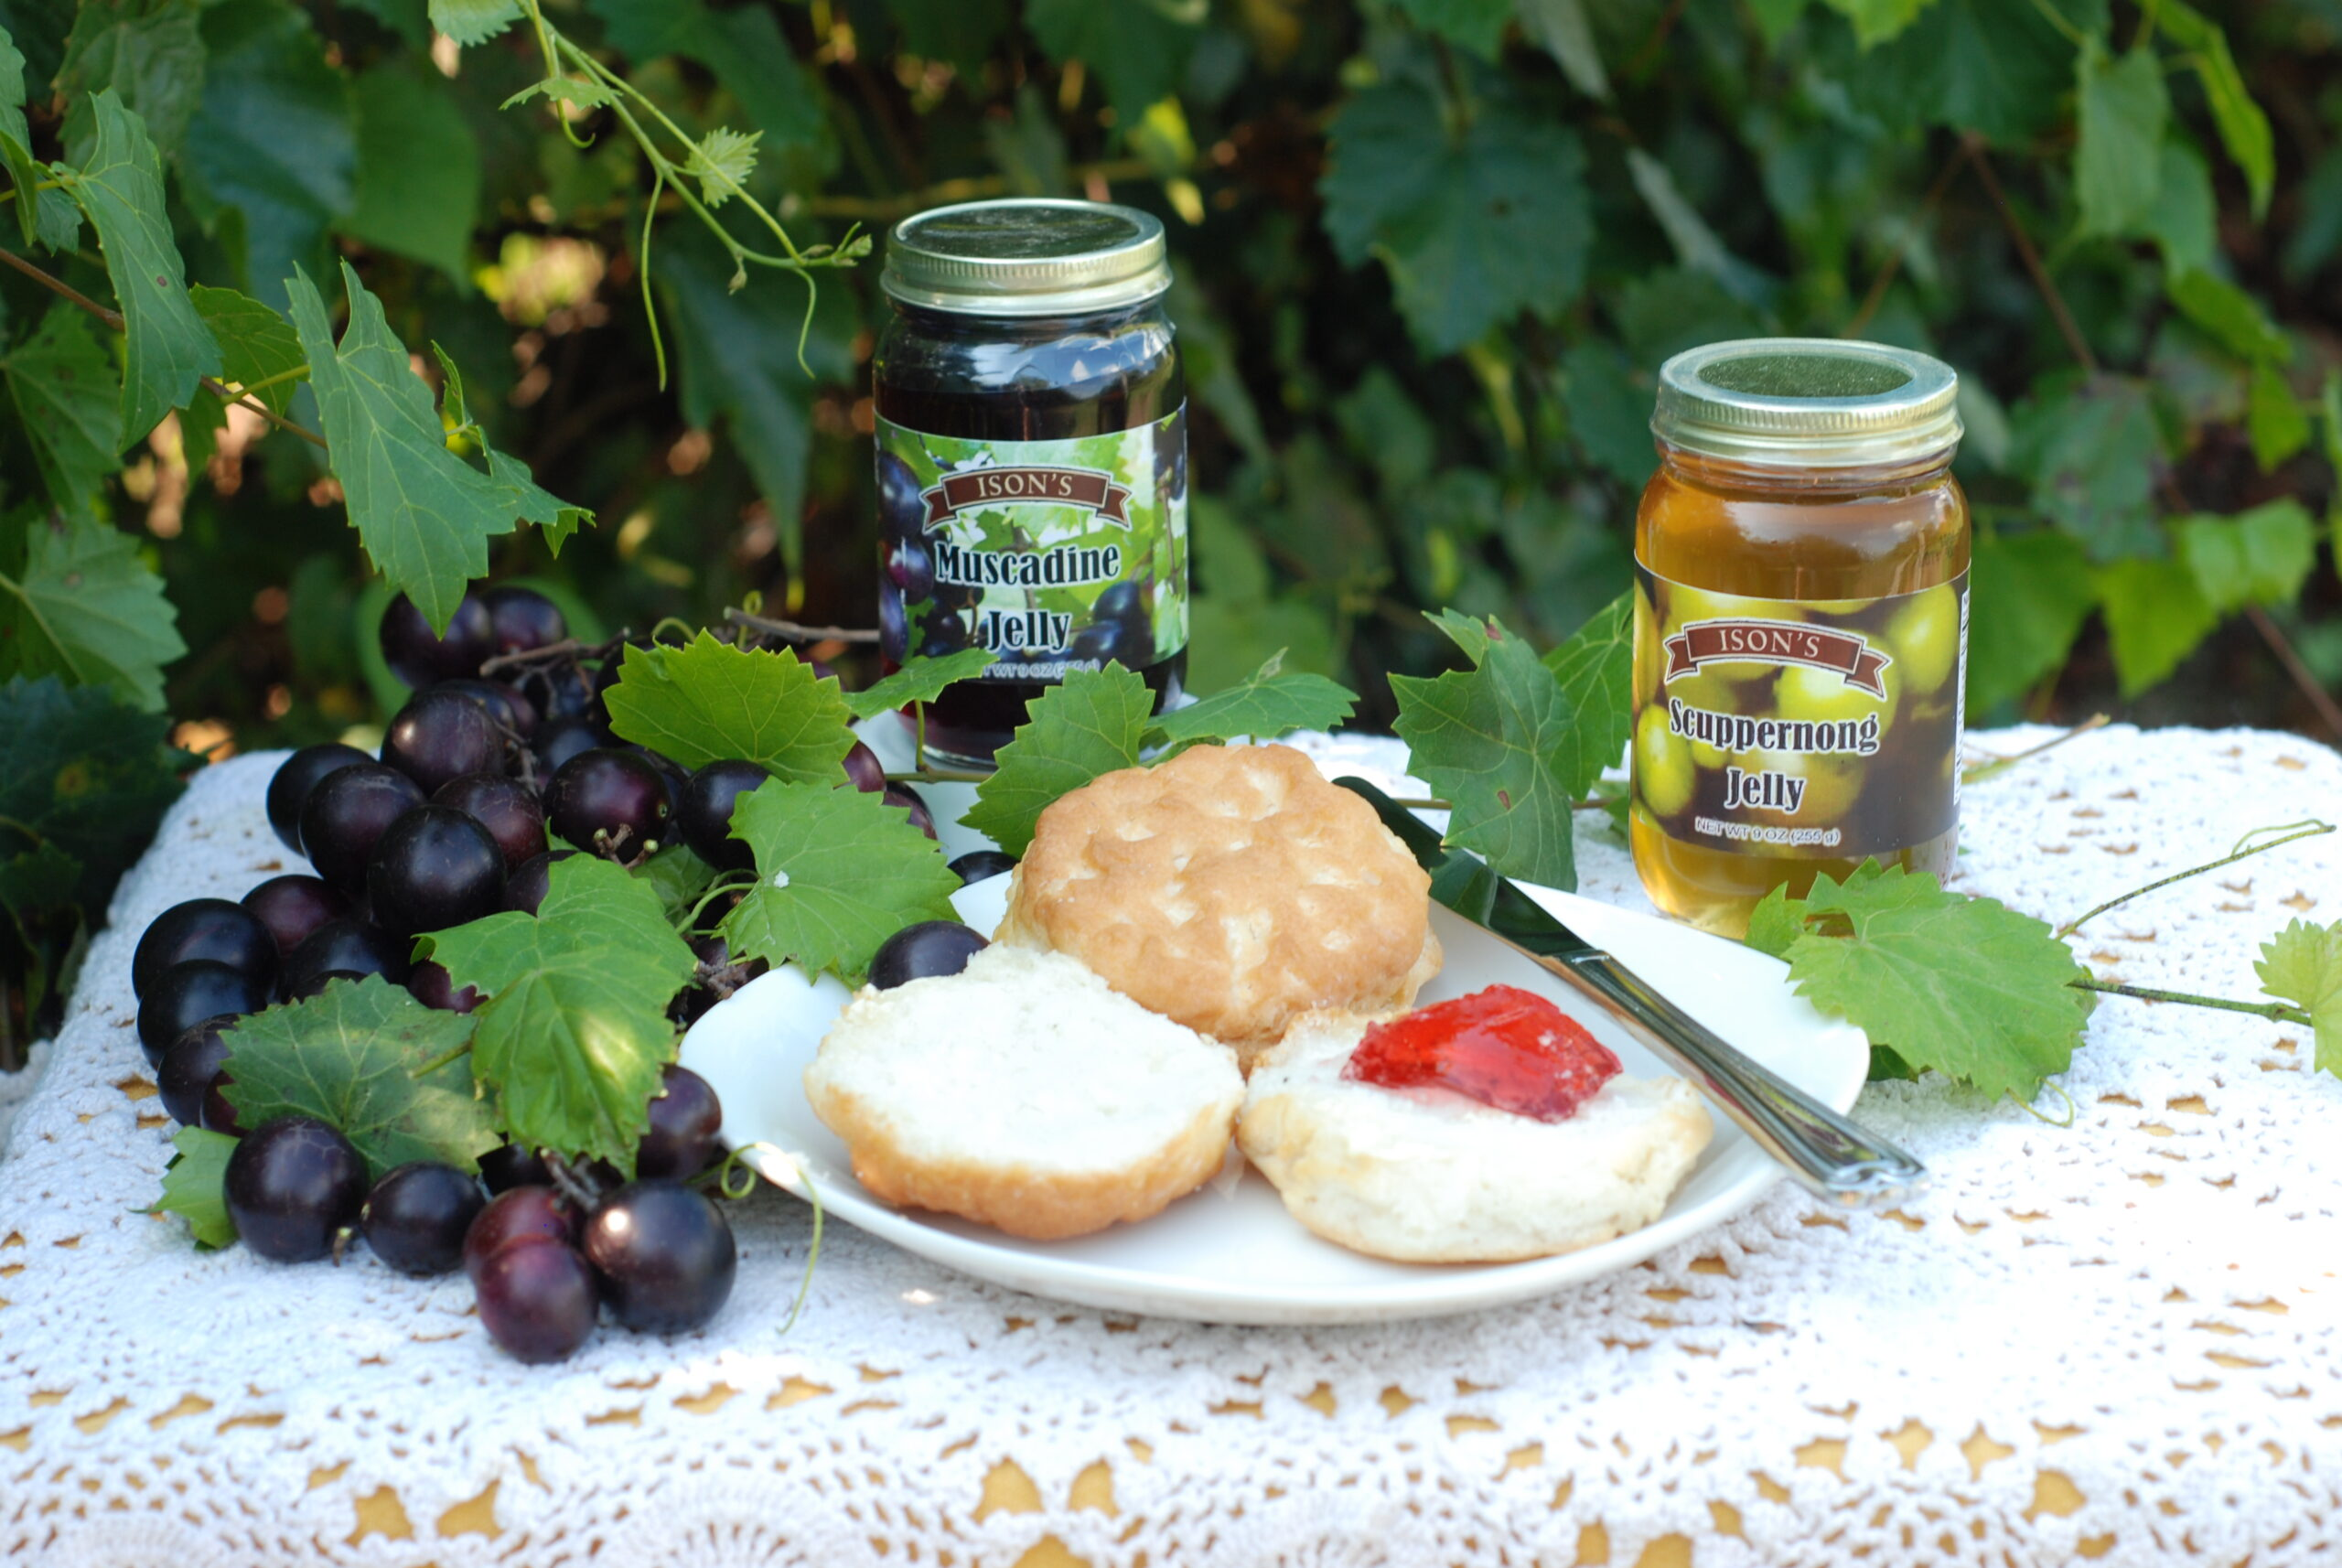 Delicious Muscadine and Scuppernong Jelly